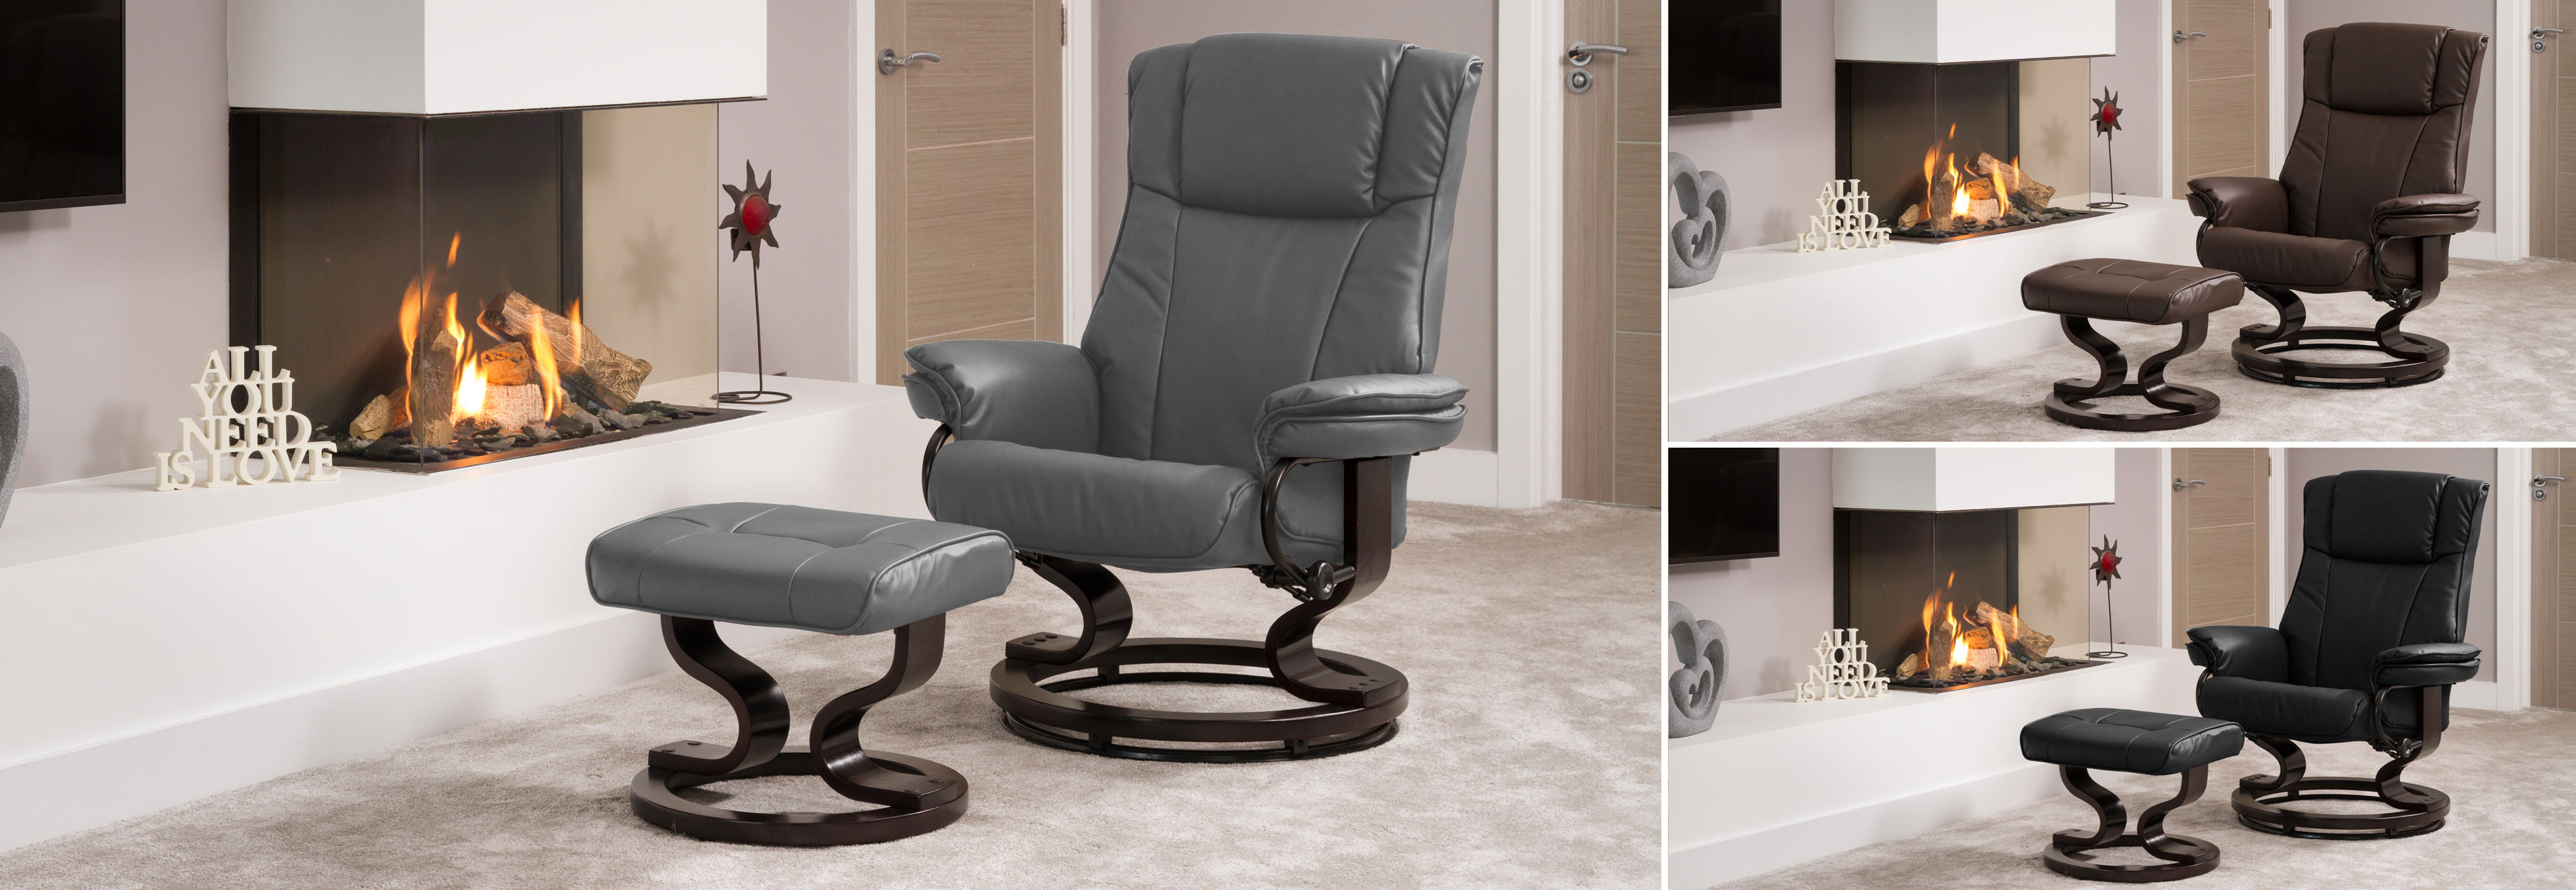 Leighton Massage and Heat Swivel Chair grey